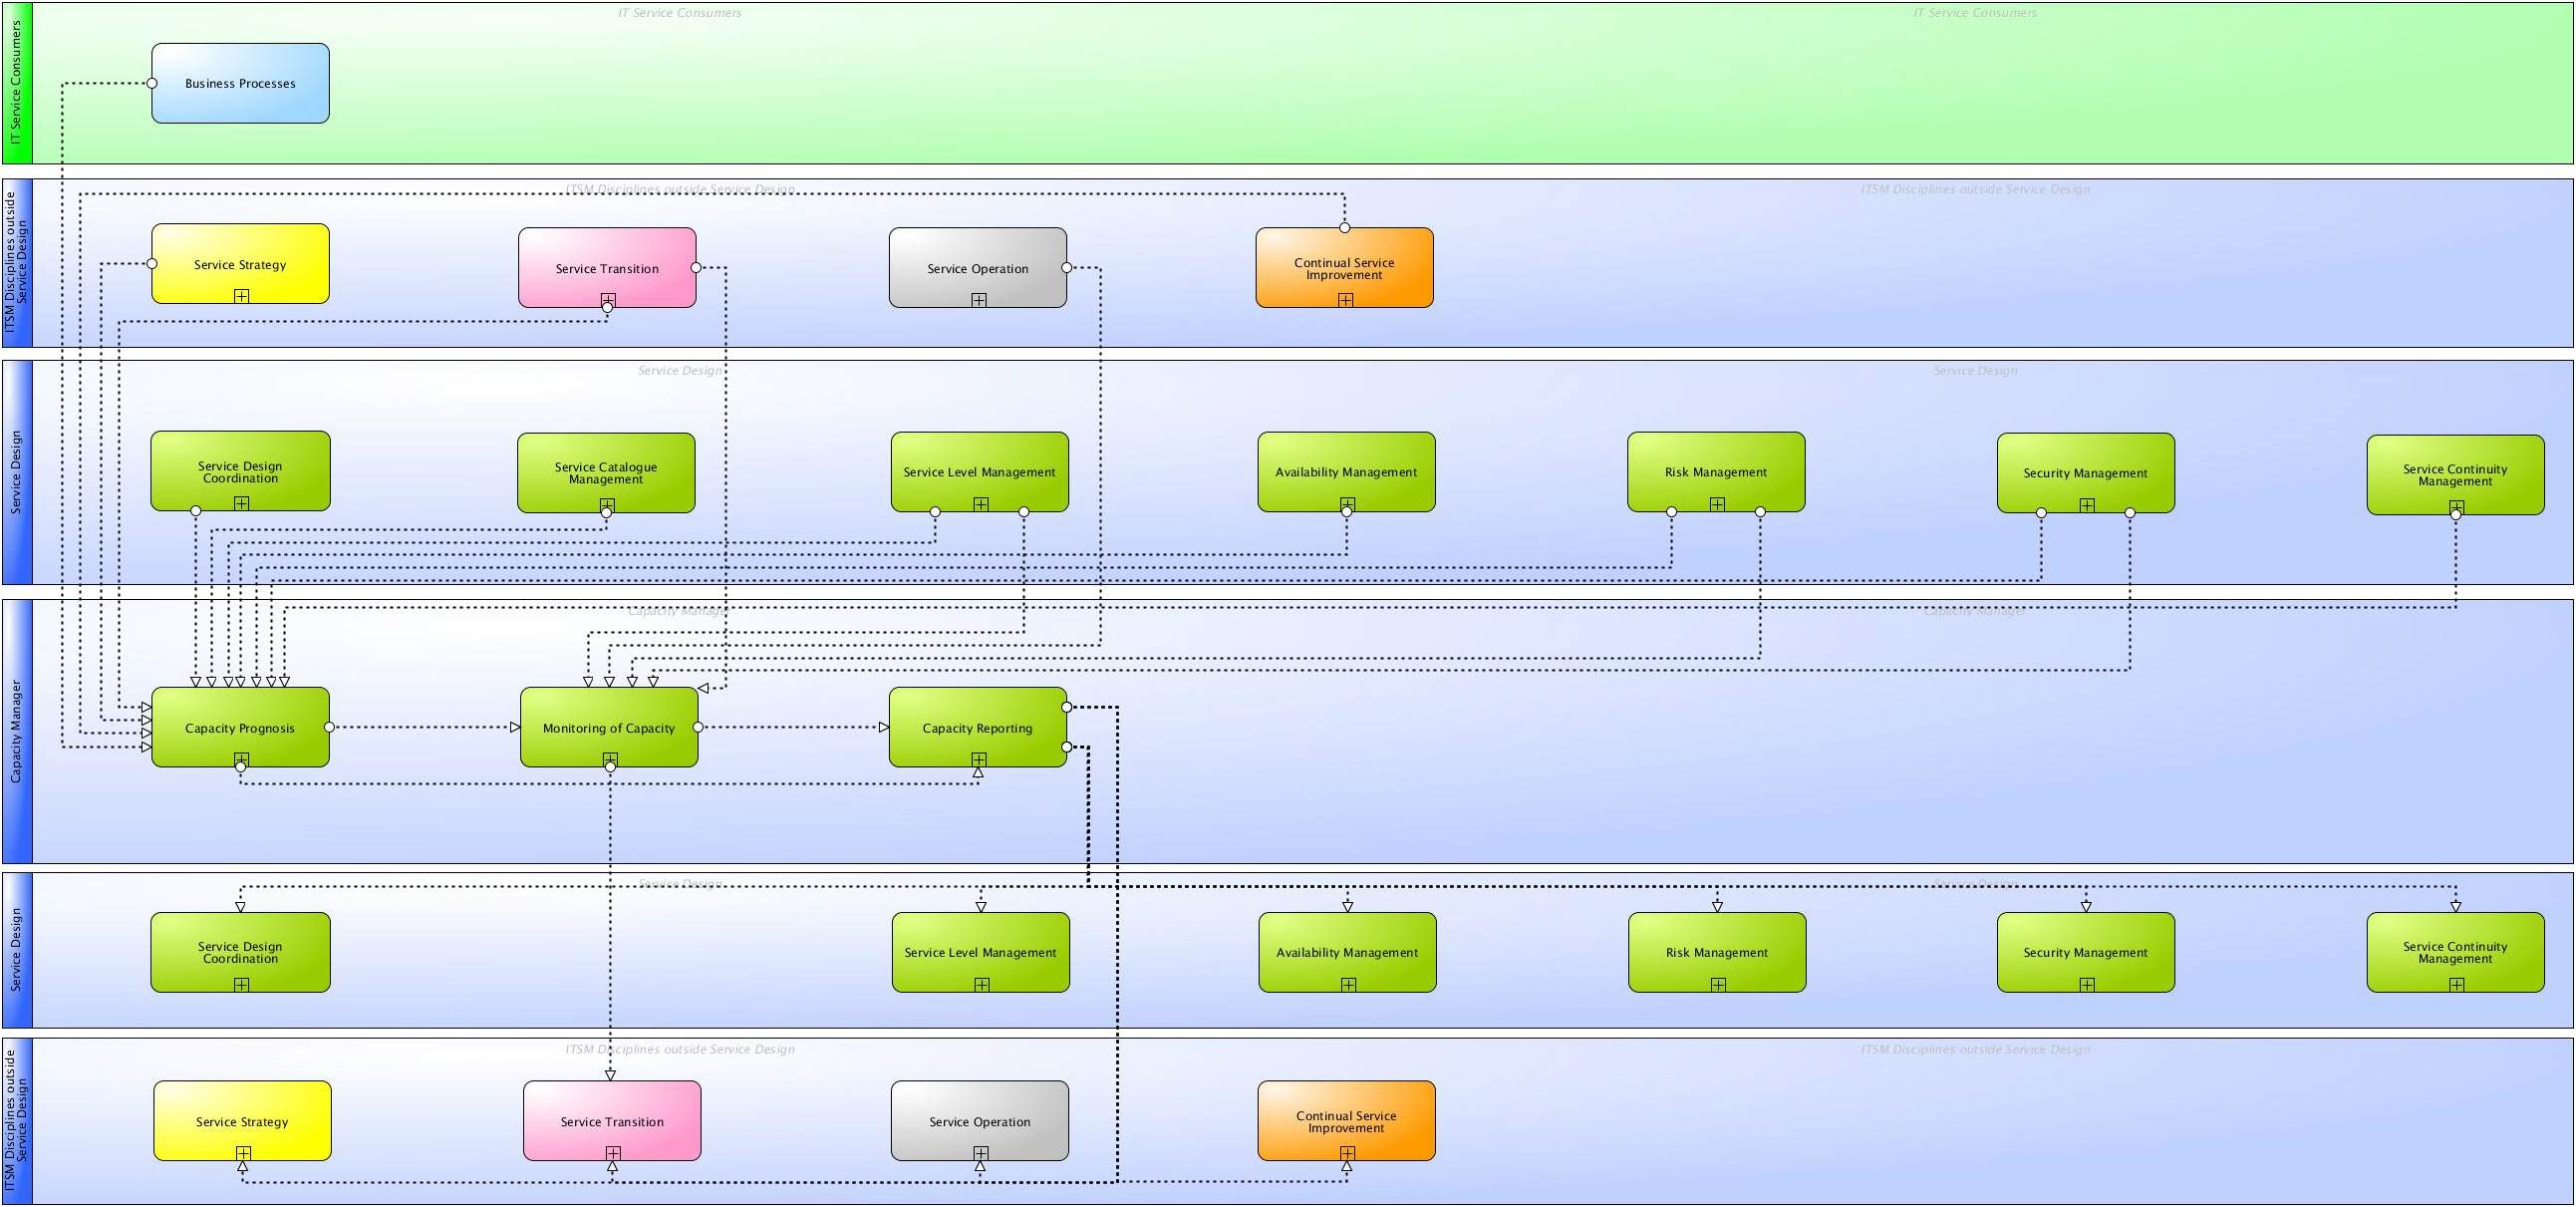 Main information flows and interfaces of ITIL® 2011 Capacity Management